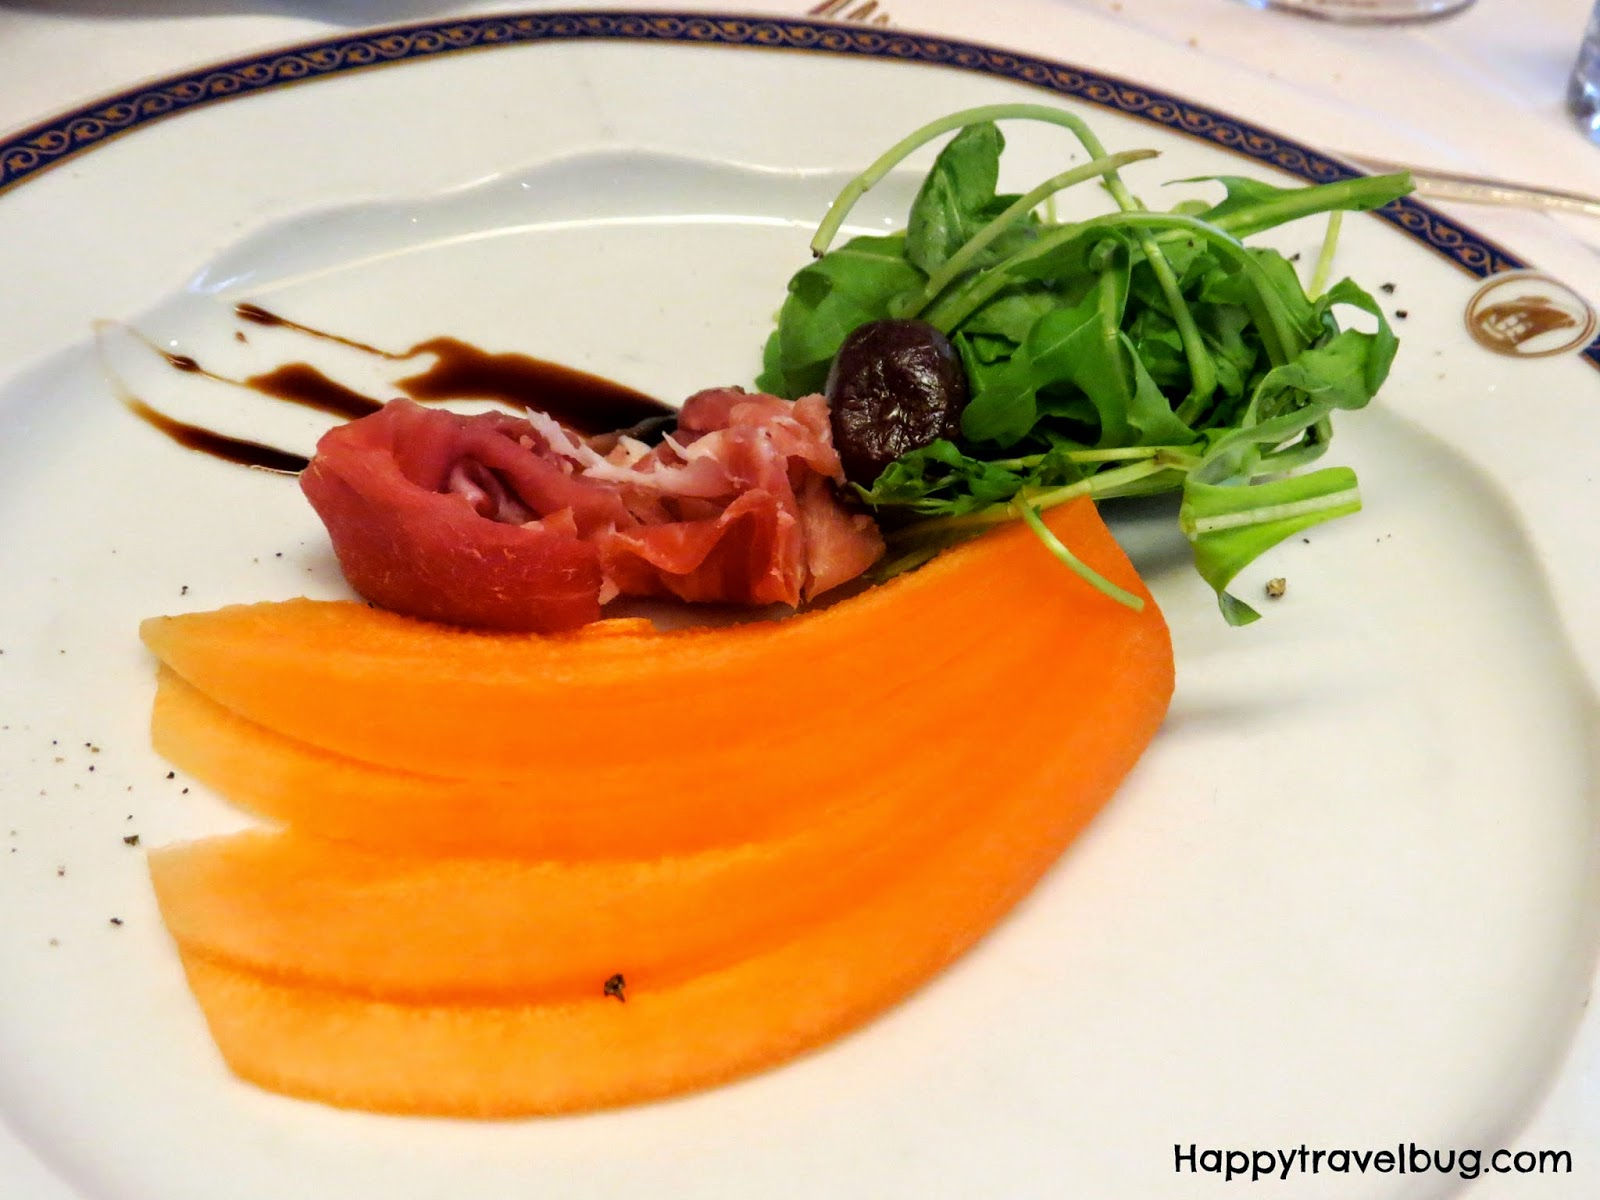 Proscuitto with melon and arugula from dinner on our Holland America cruise